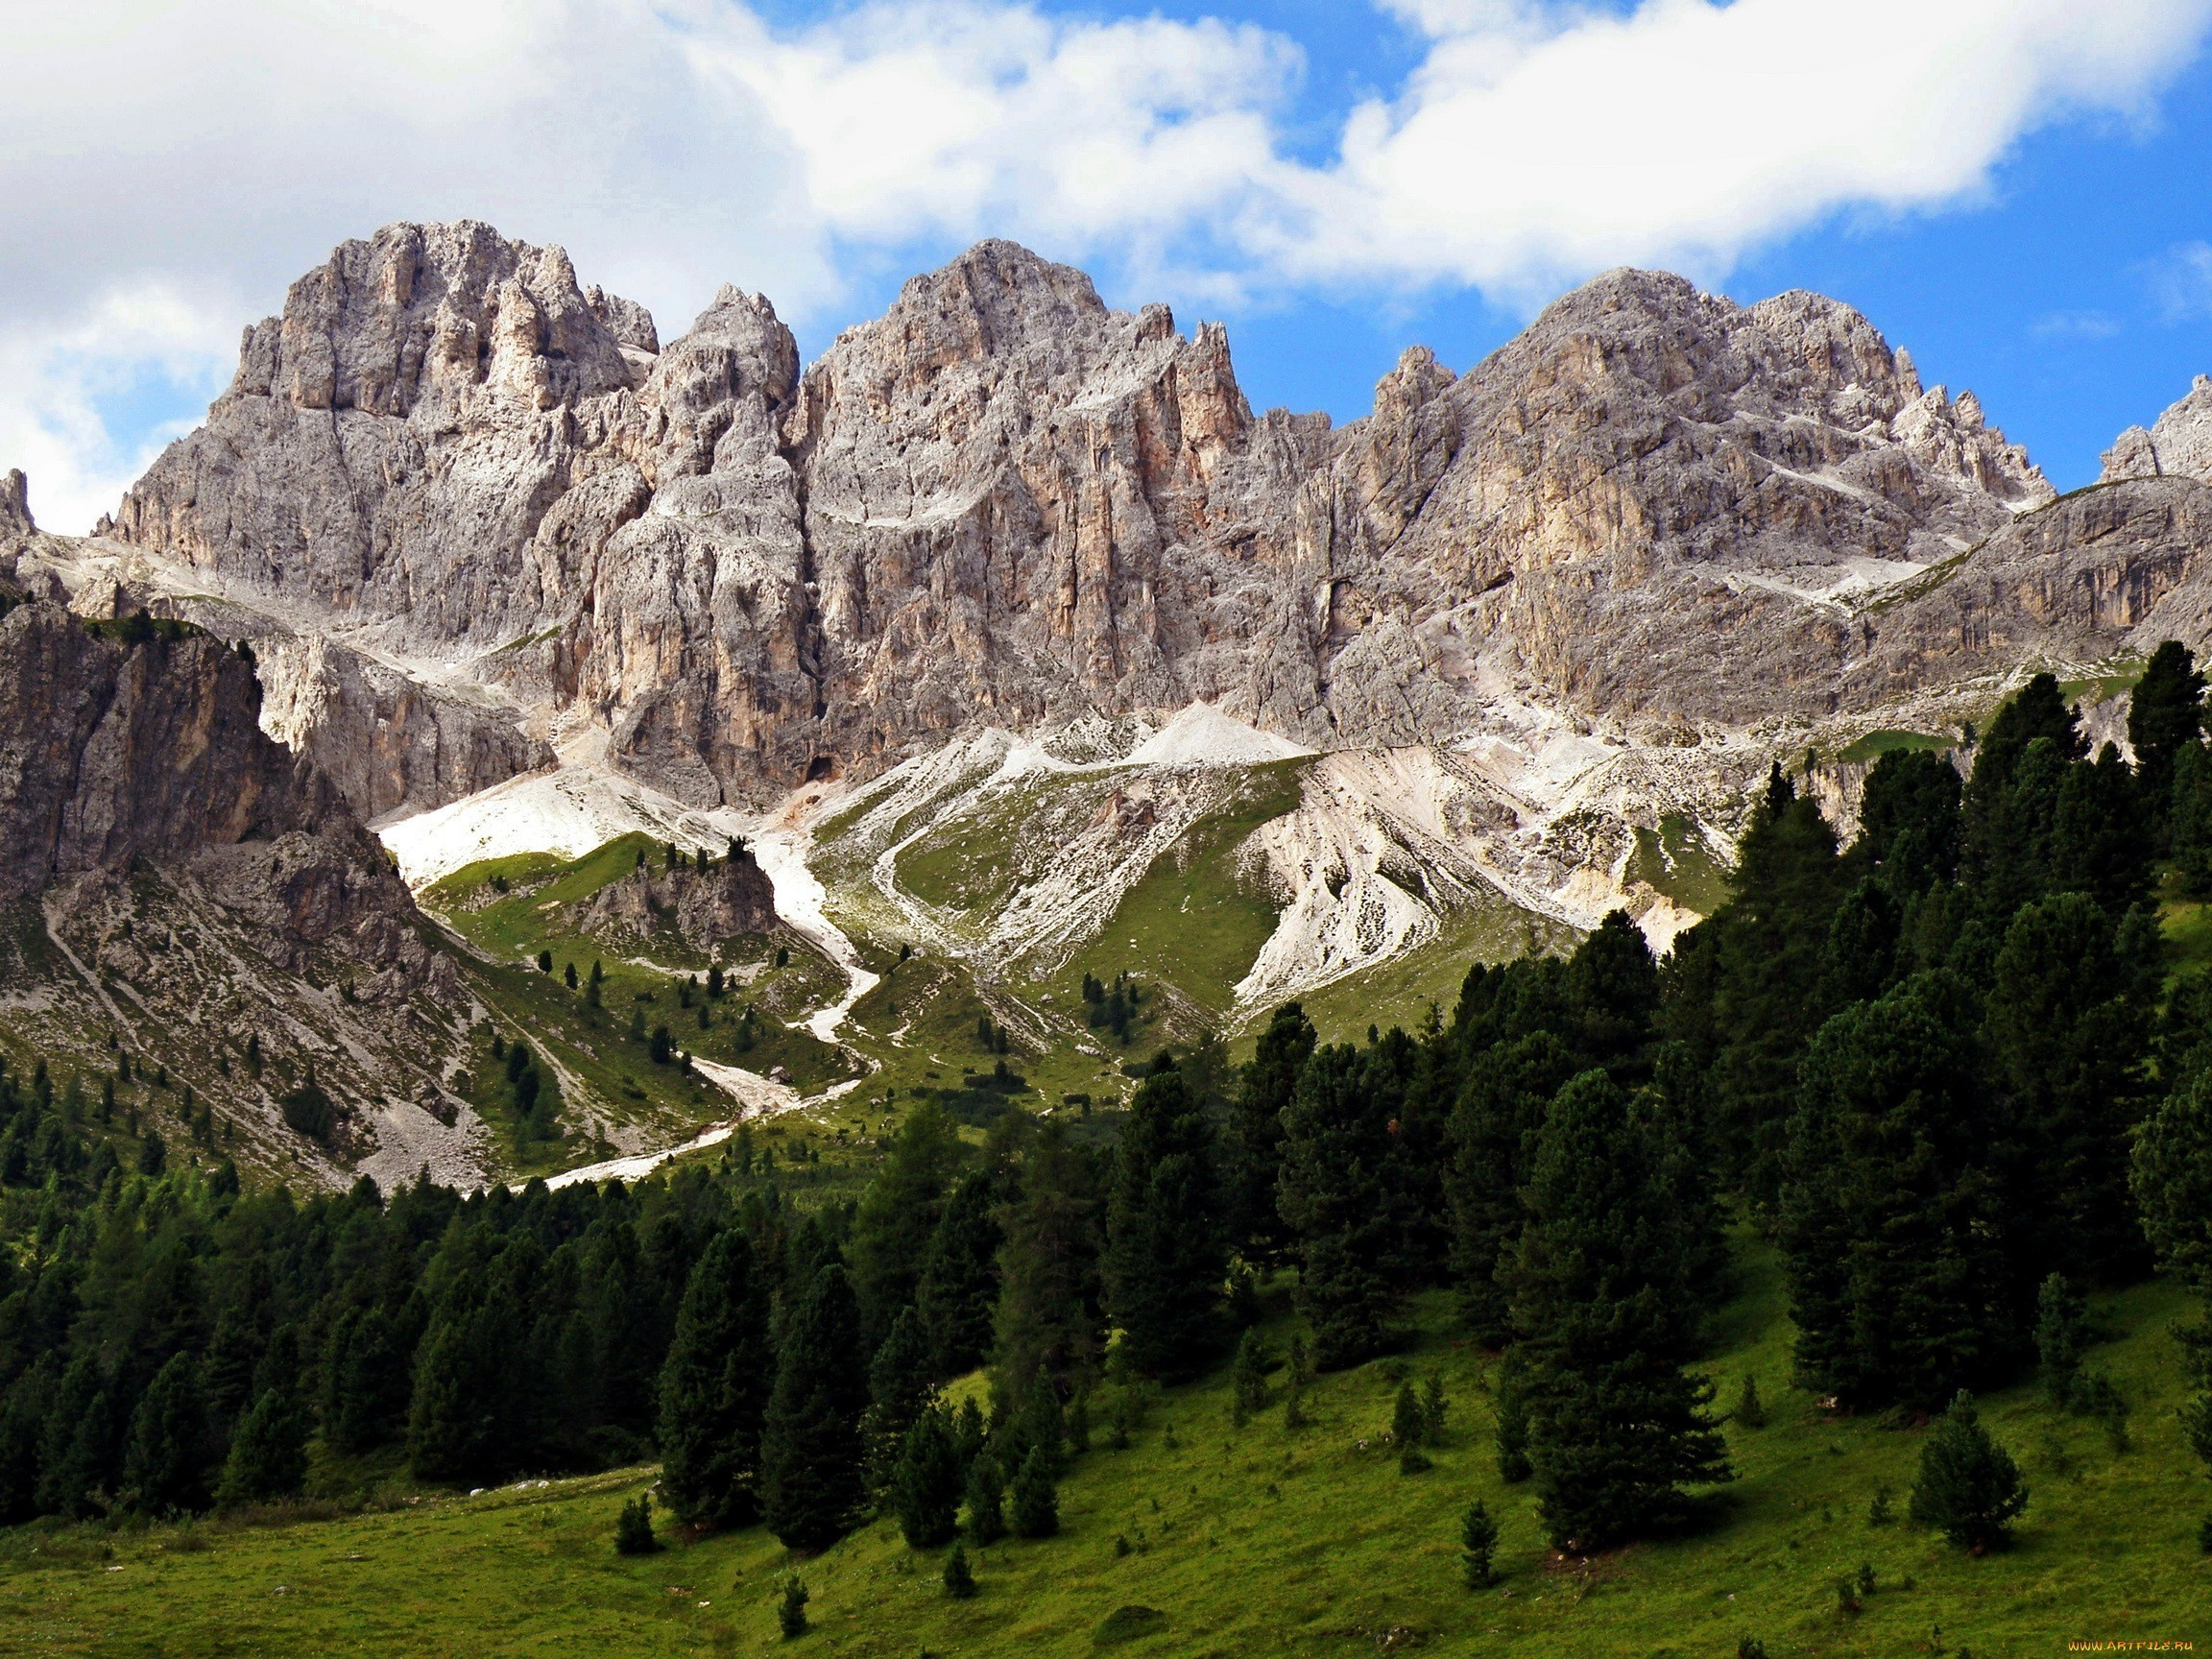 Res: 2304x1728, Mountains landscapes nature italy alps wallpaper